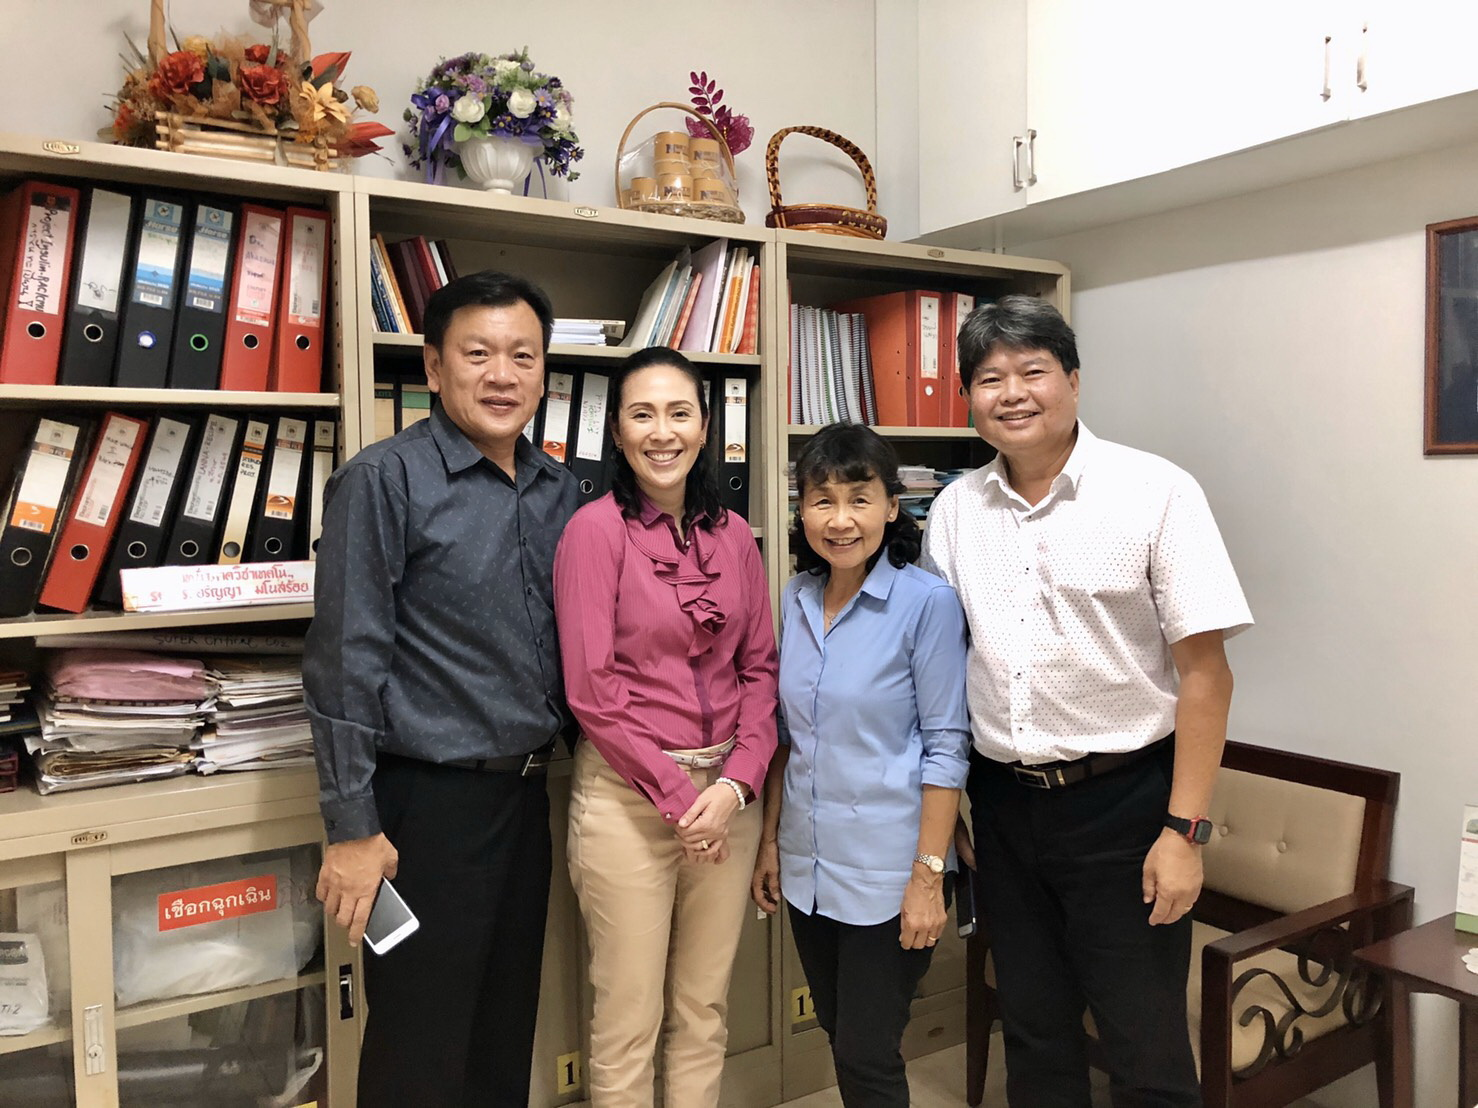 Lecturer Chutima Chavasint, Vice President of North – Chiang Mai University together with Mr.Kiattisak Trisaengrugira have visited Manose Health and Beauty Research Center